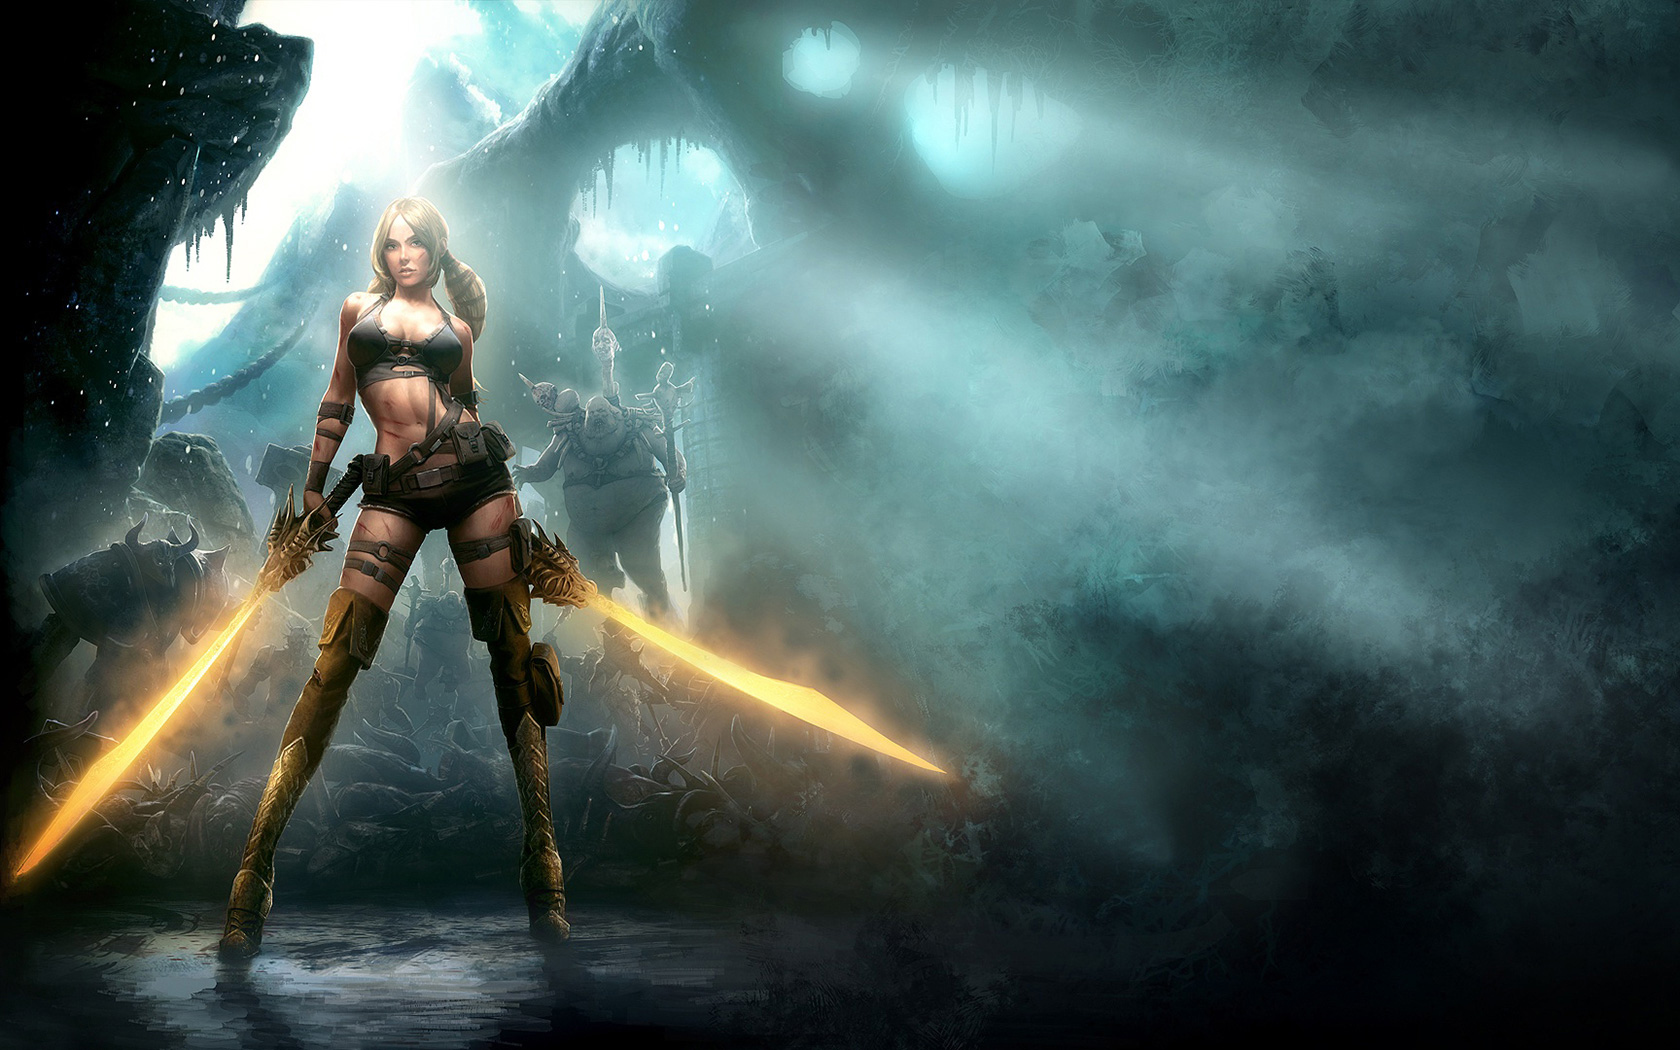 HD Video Game Wallpaper Game Wallpaper for both Mobile 1680x1050